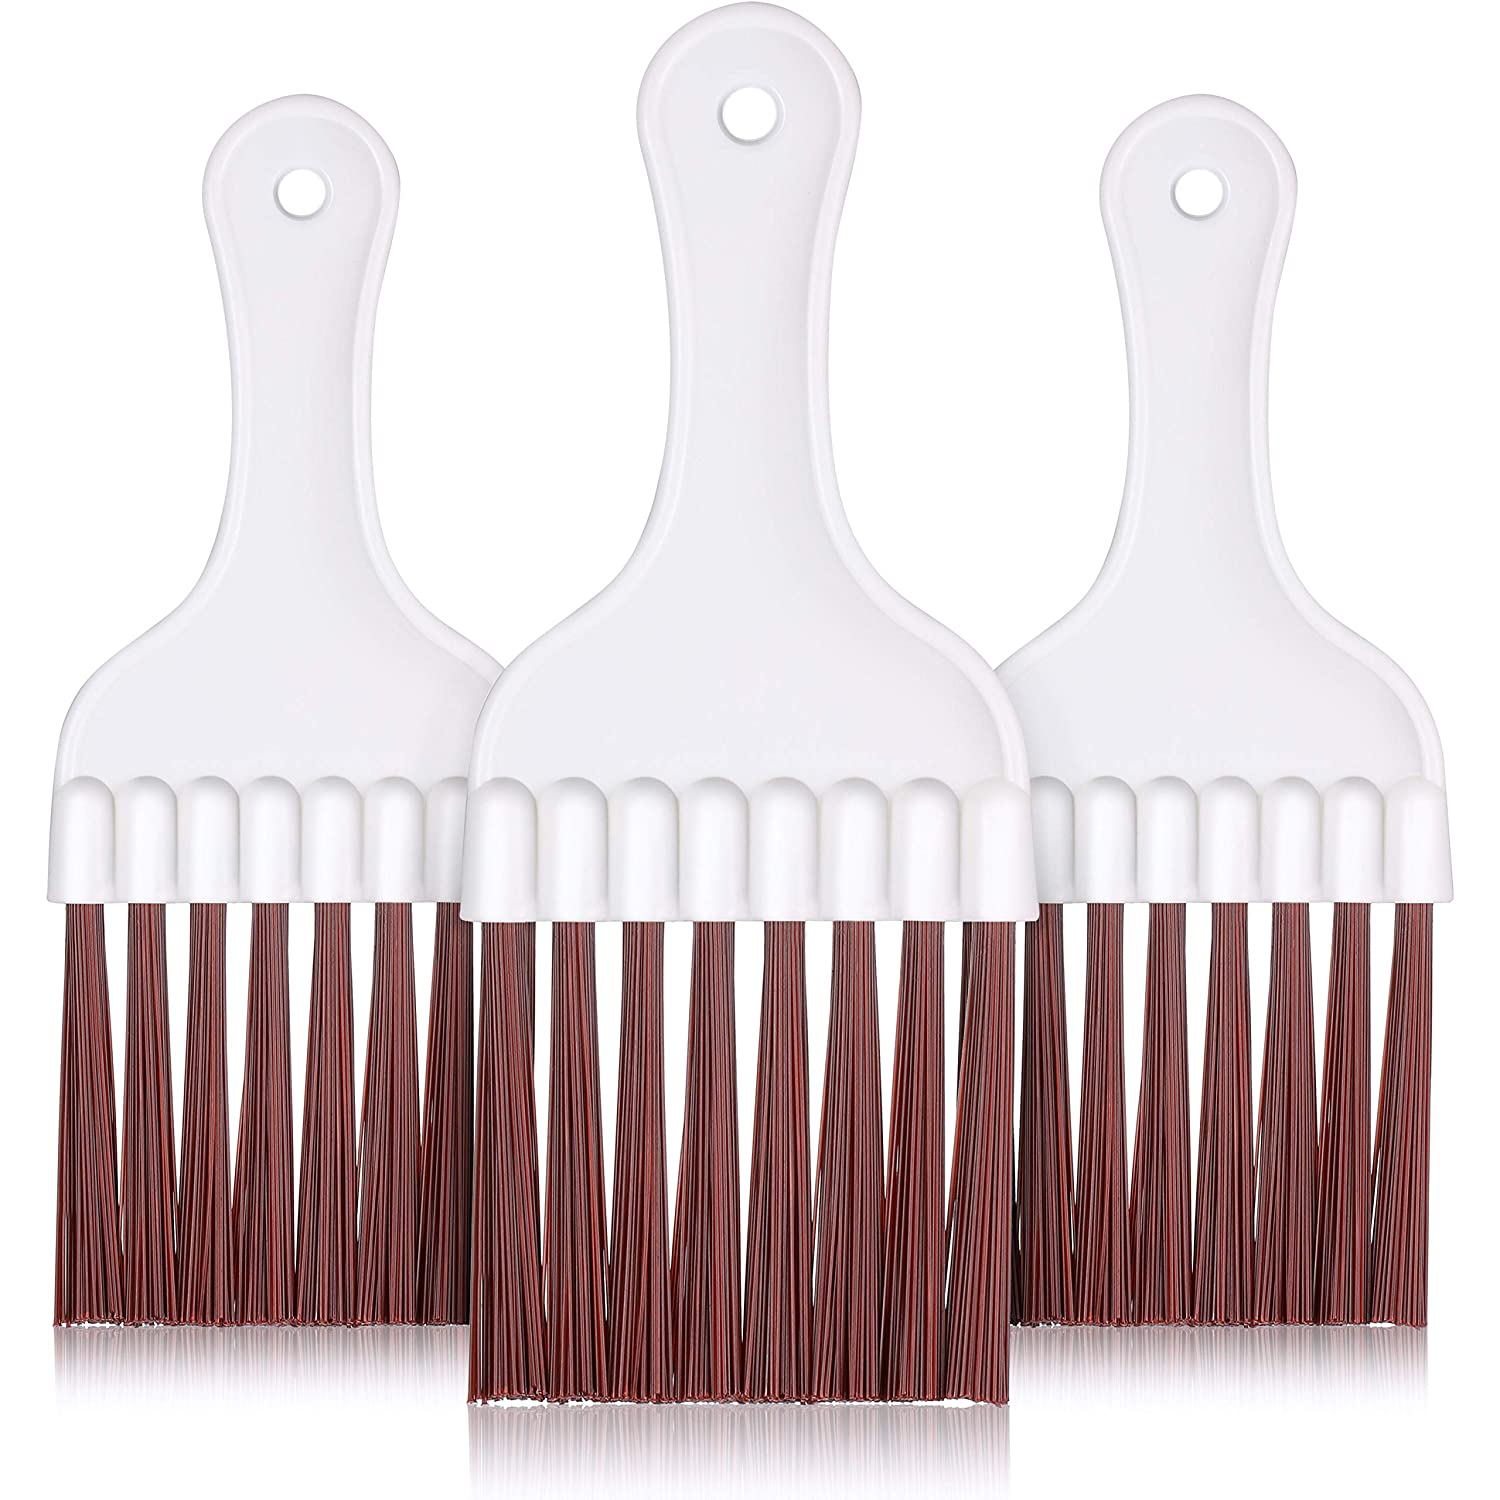 3 Pieces Air Conditioner Condenser Fin Cleaning Brush, Refrigerator Coil Cleaning Whisk Brush (3 Pieces)